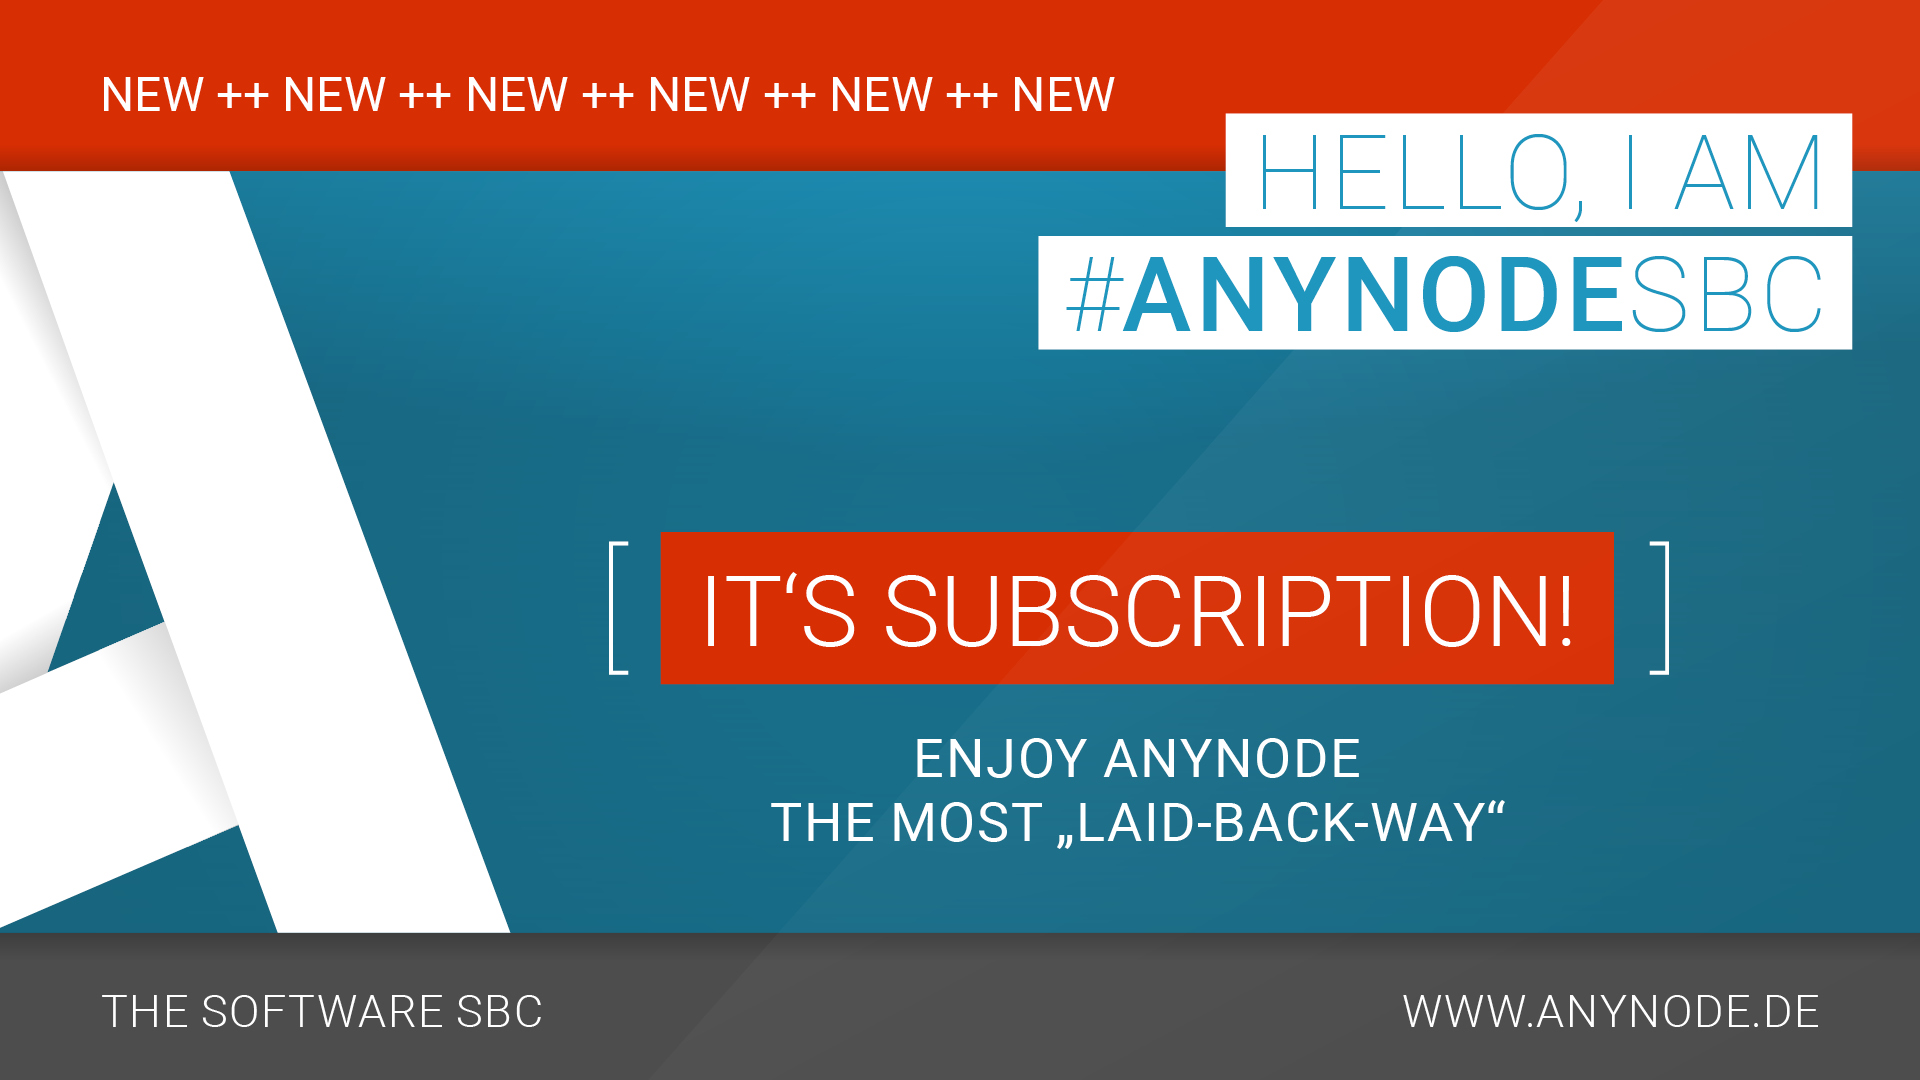 """the most """"laid-back-way"""" to enjoy #anynodeSBC –subscribe to unwind."""